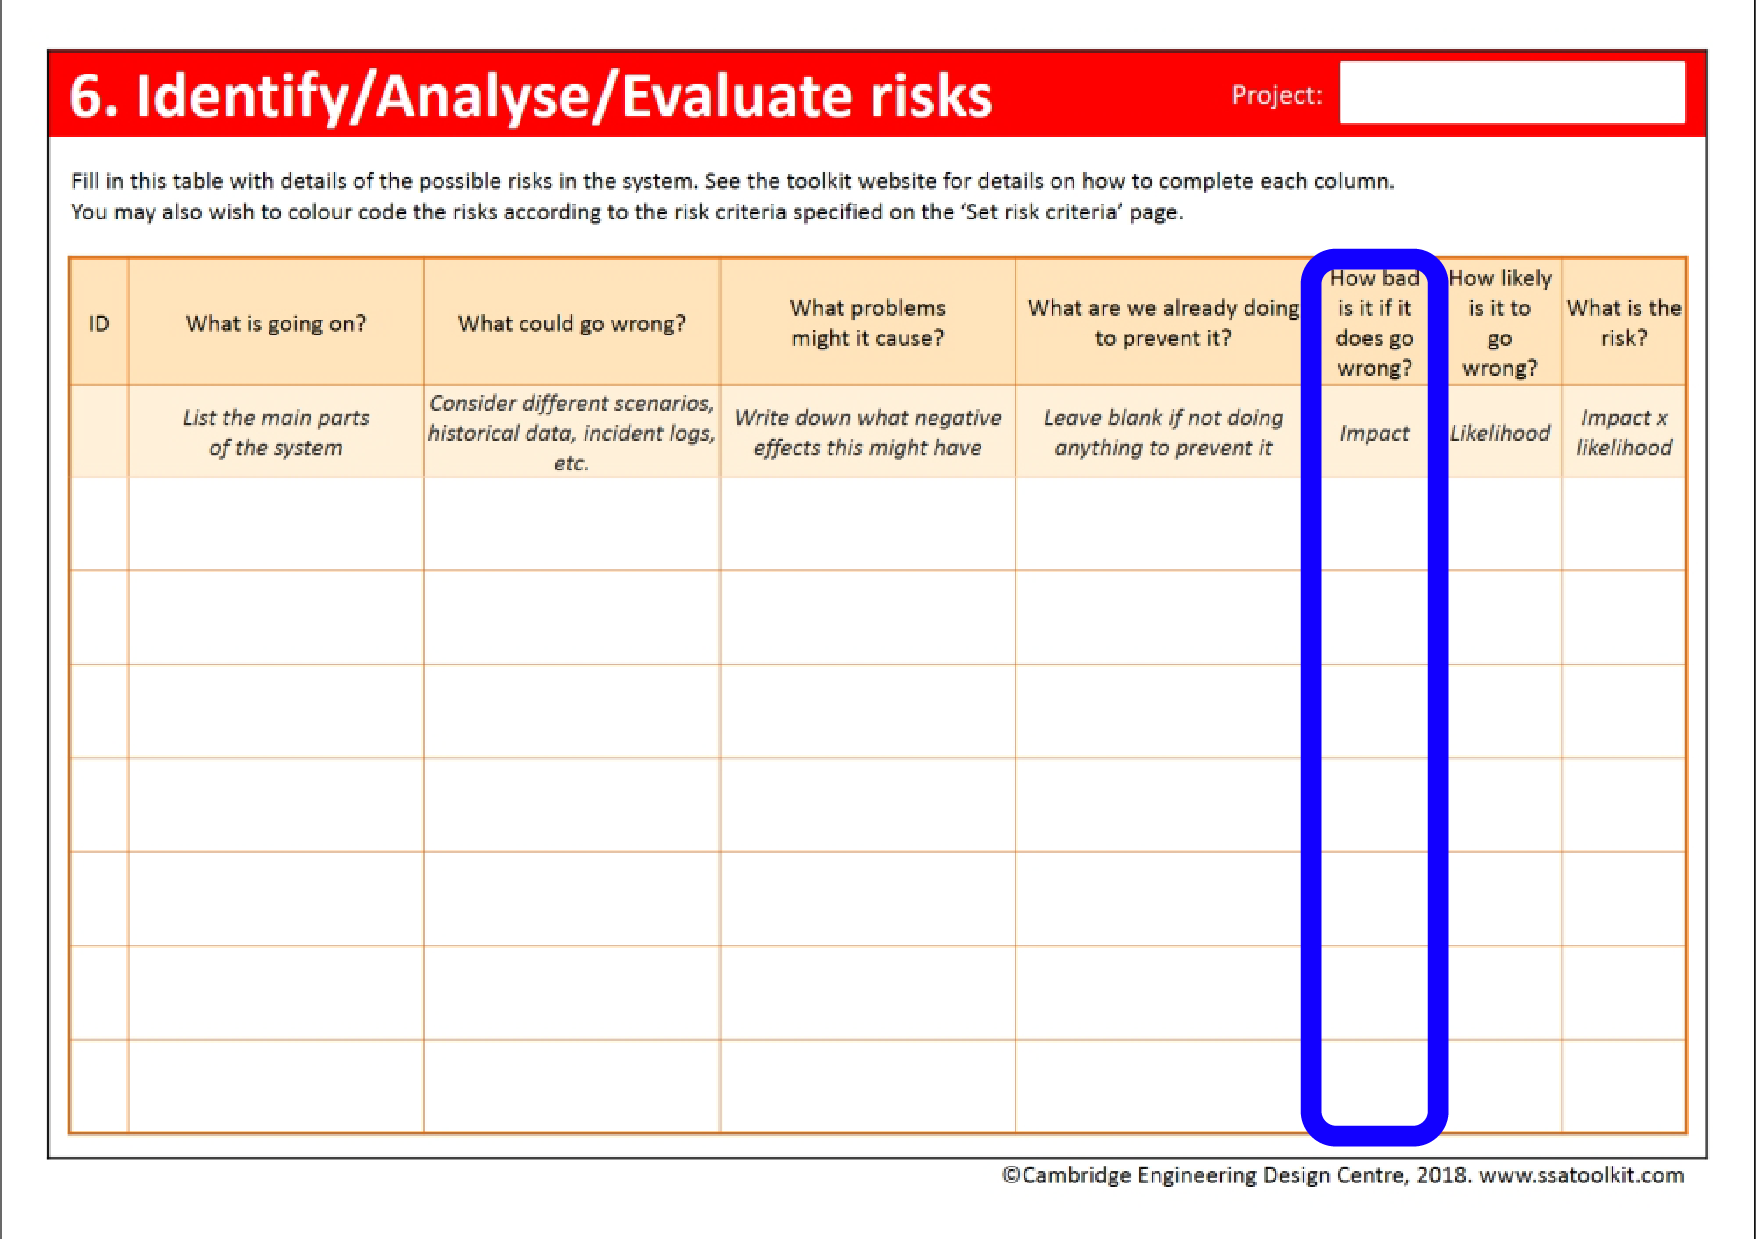 Screenshot of the Set risk criteria page of the assessment form